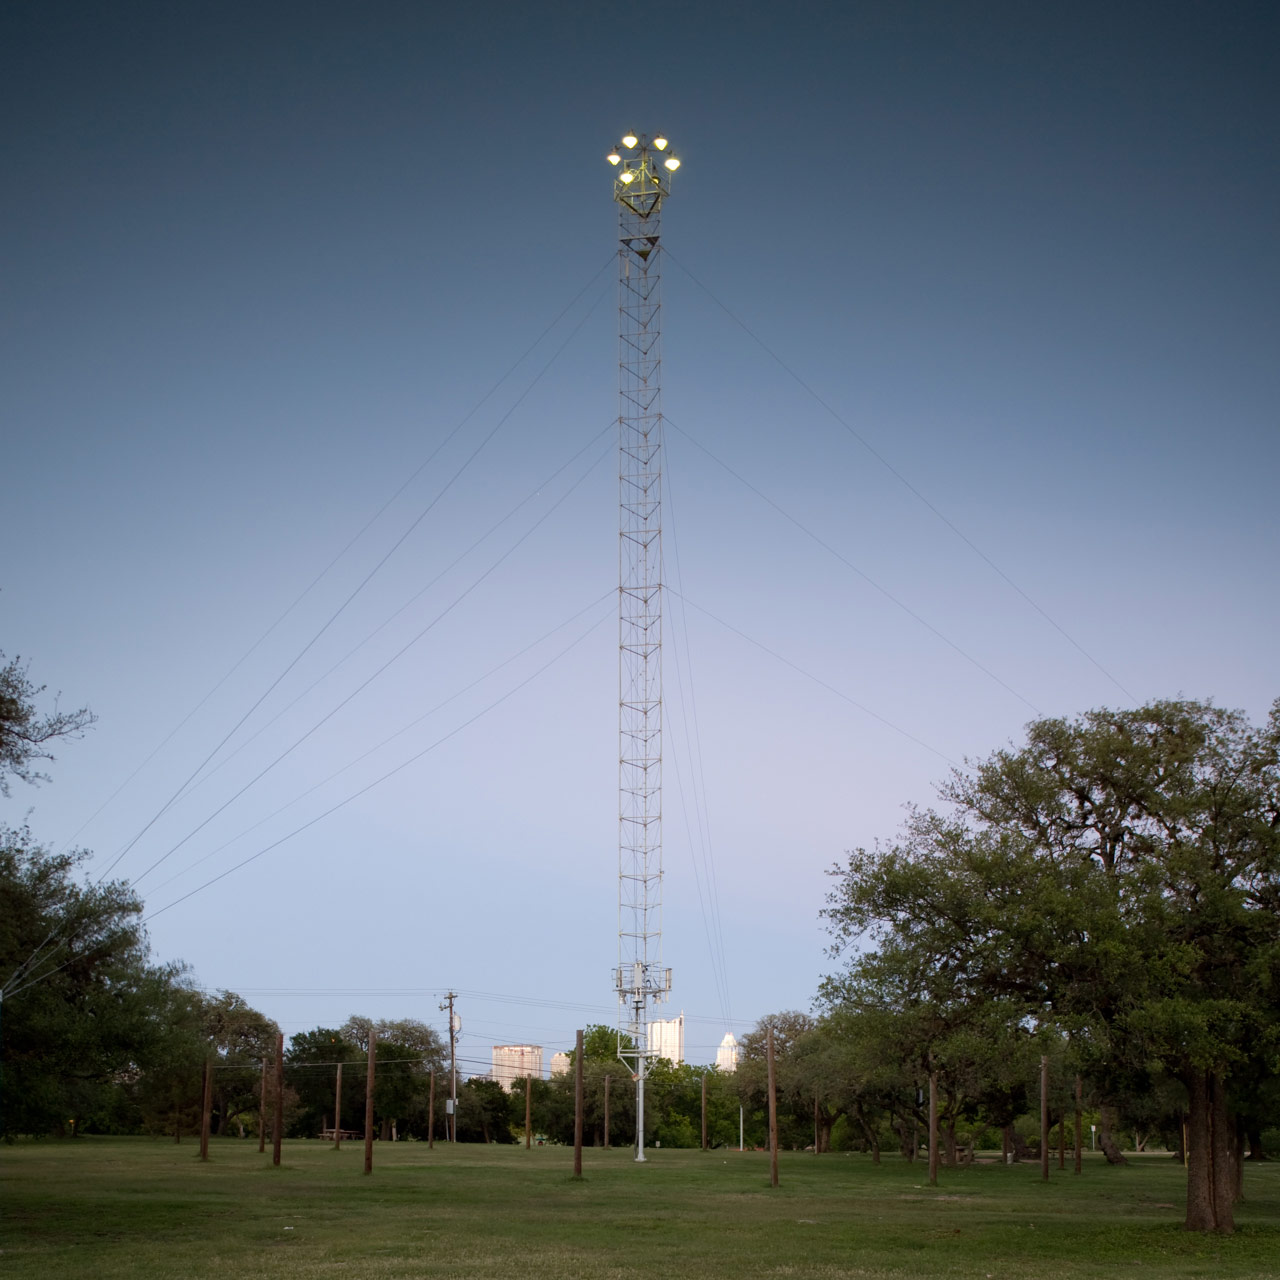 Andy_Mattern-Moonlight_Tower_Zilker